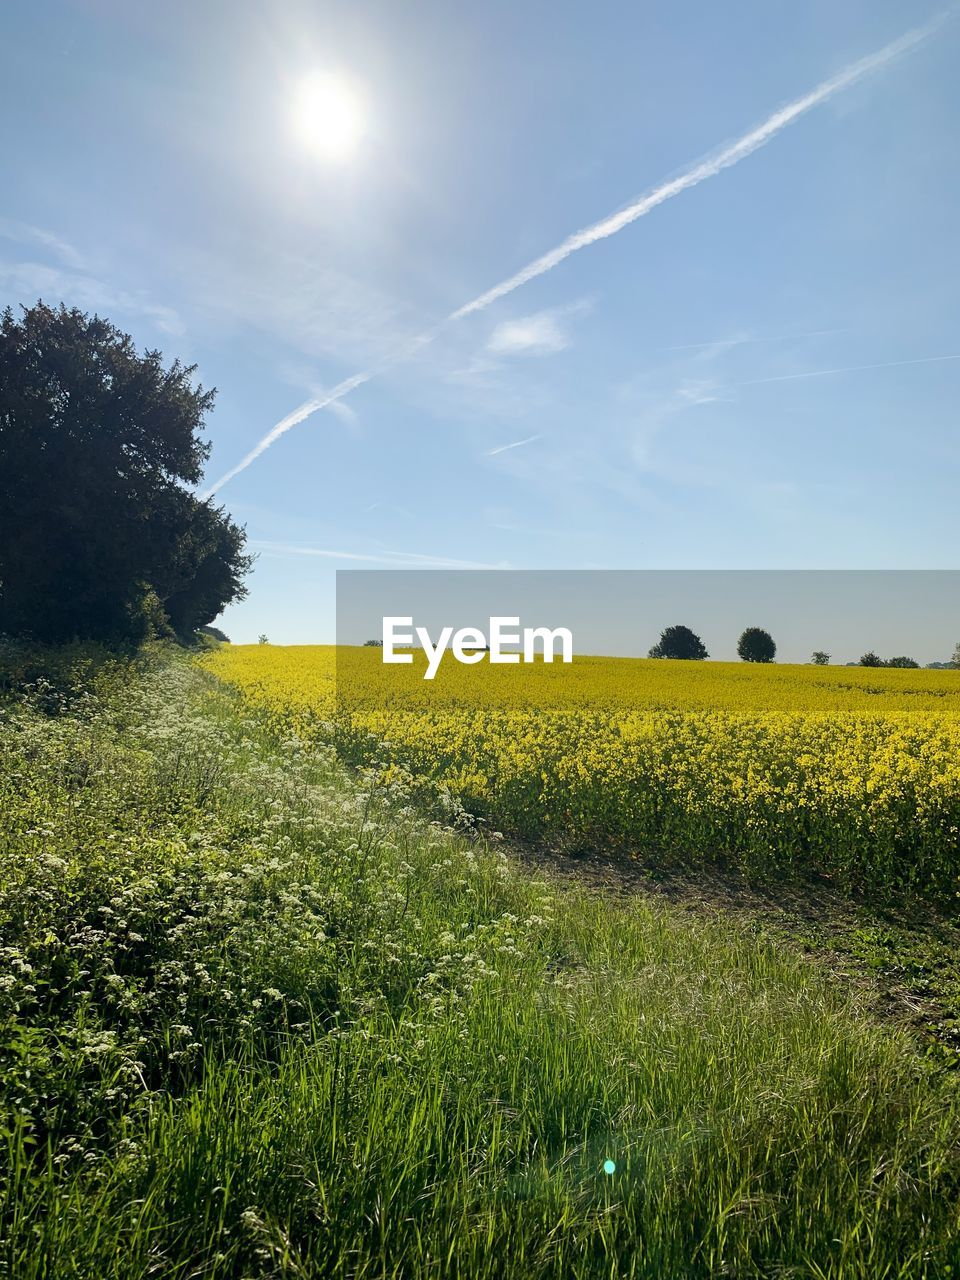 plant, sky, landscape, beauty in nature, field, land, tranquil scene, environment, yellow, tranquility, scenics - nature, growth, nature, rural scene, agriculture, grass, flower, tree, oilseed rape, sunlight, no people, sun, outdoors